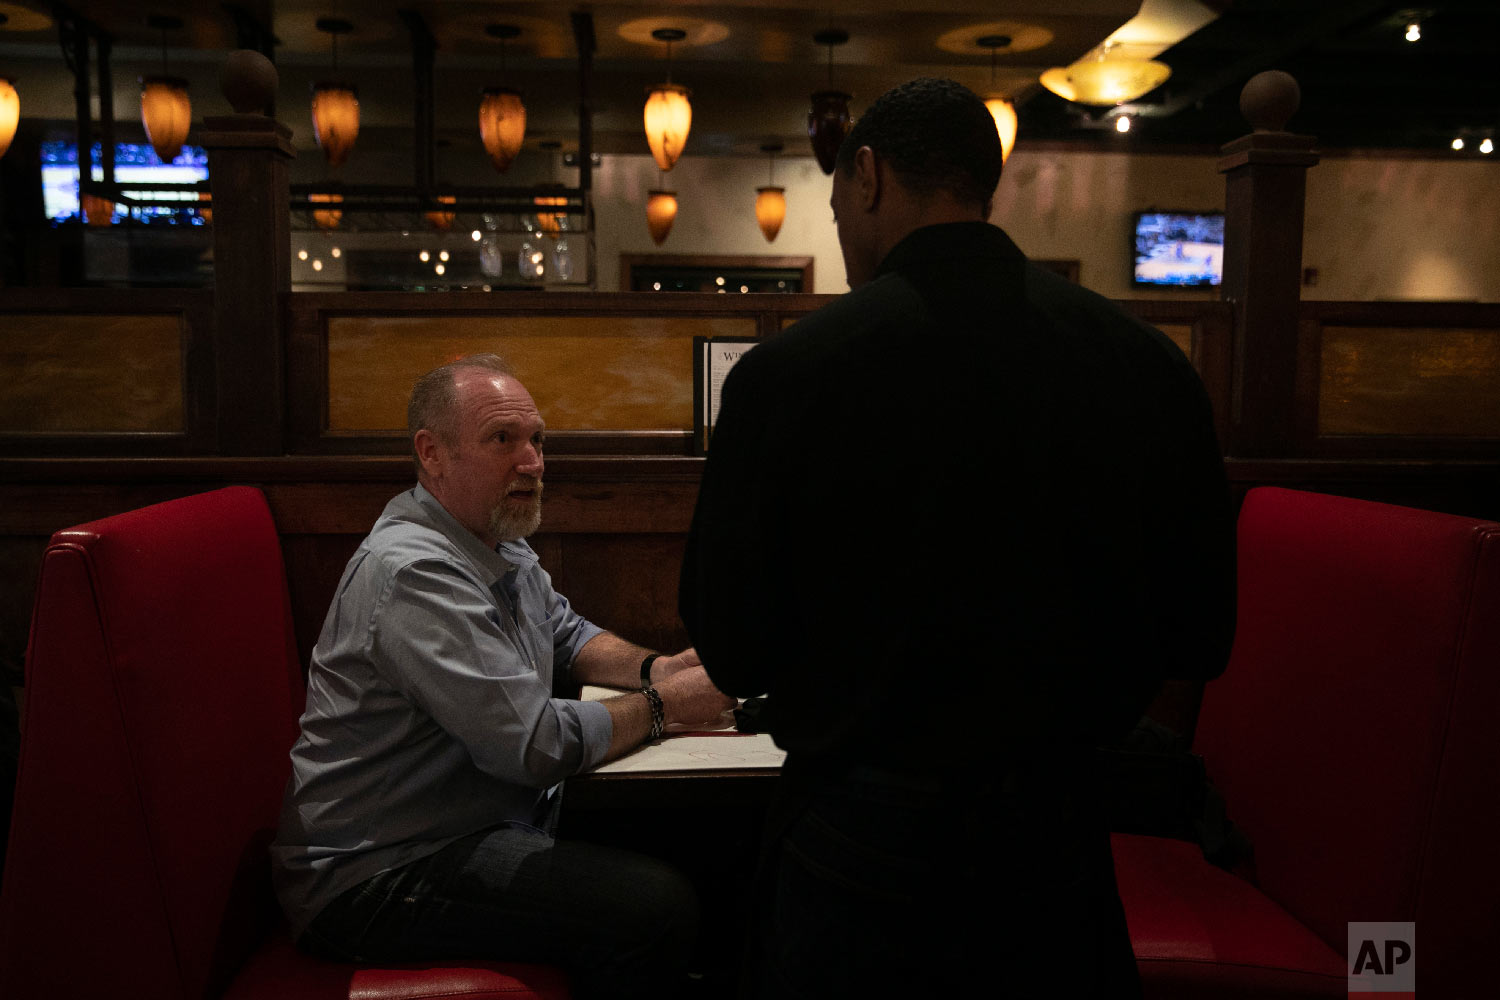 Chris George, a federal employee furloughed from his job as a forestry technician supervisor for the U.S. Department of Agriculture Forest Service, orders his meal at a Romano's Macaroni Grill restaurant Saturday, Jan. 19, 2019, in Redlands, Calif. (AP Photo/Jae C. Hong)